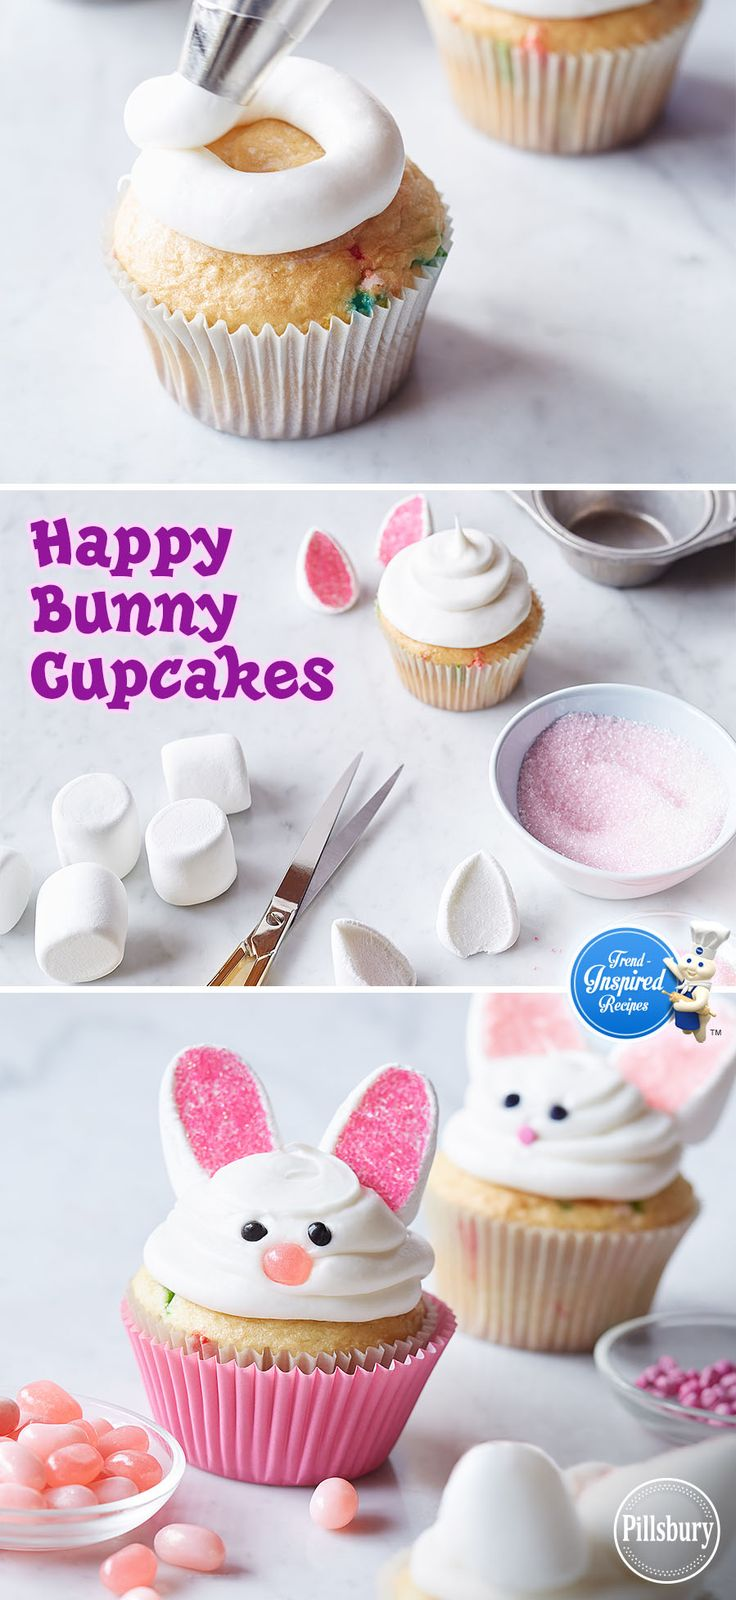 With marshmallows, jellybeans and pink decorator sugar, you can turn plain white cupcakes into Happy Bunny Cupcakes! See how easy it is to make these super cute Easter treats!